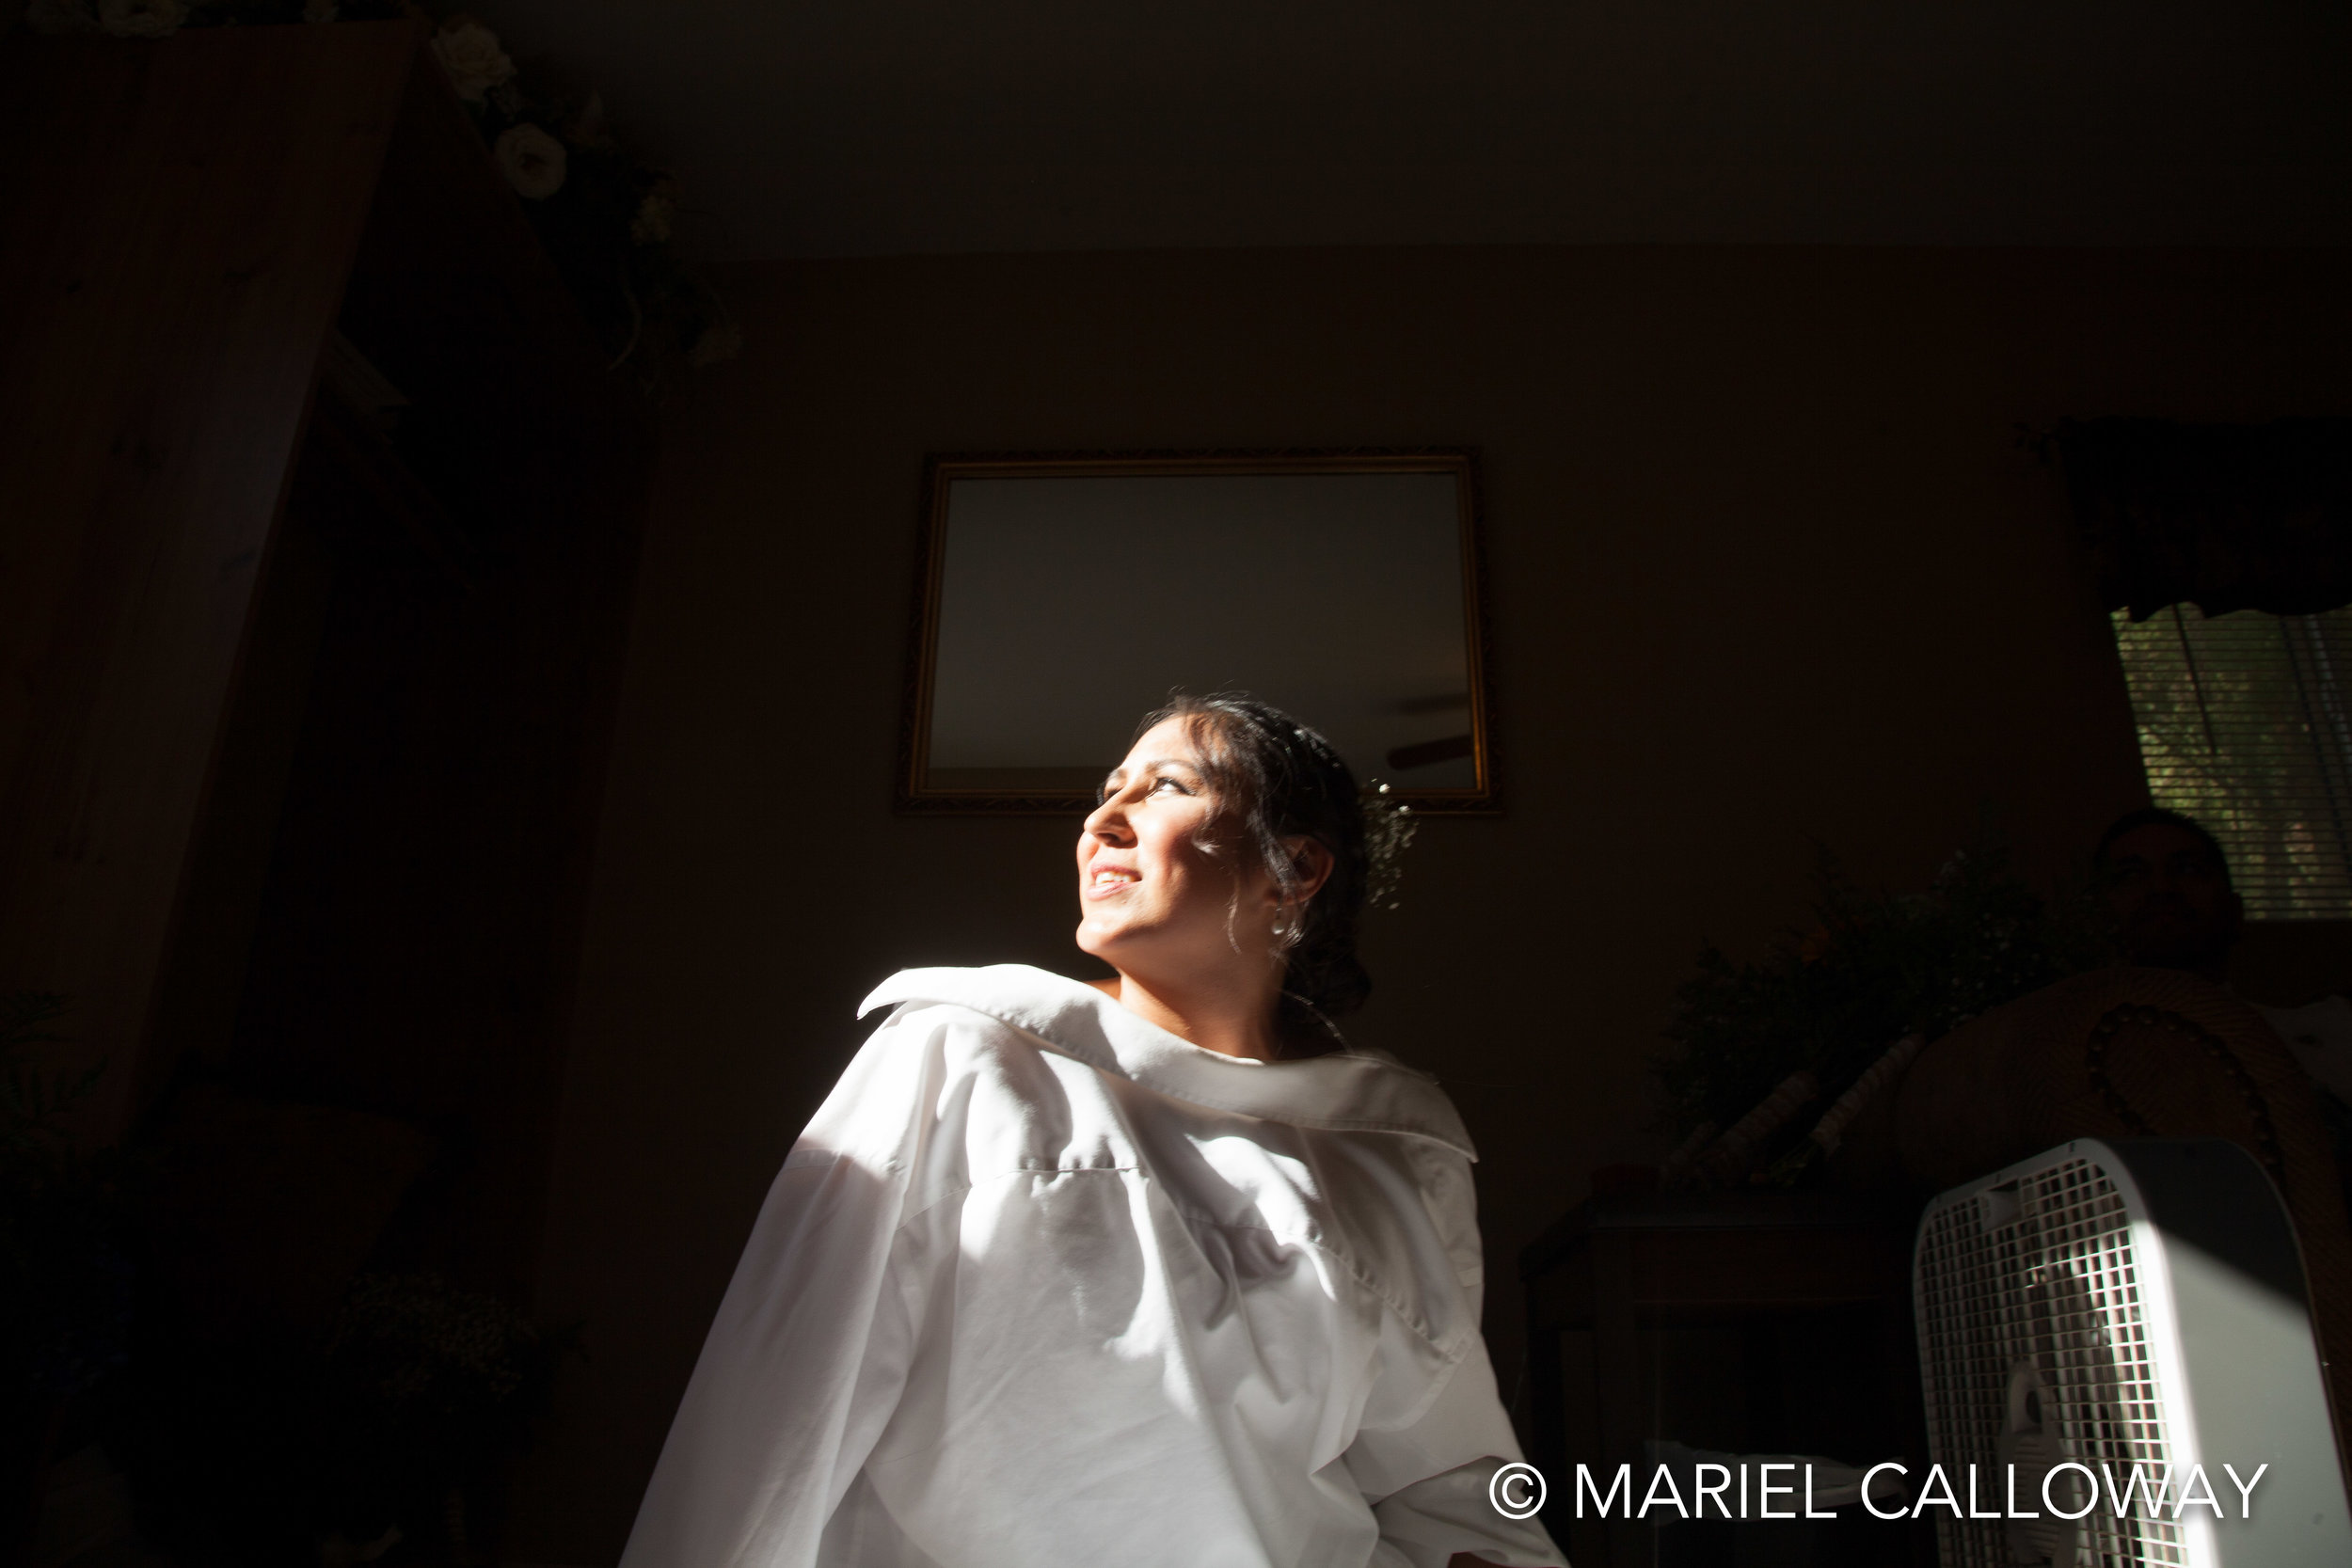 Mariel-Calloway-Wedding-Photographer-Los-Angeles-NatRory-6.jpg